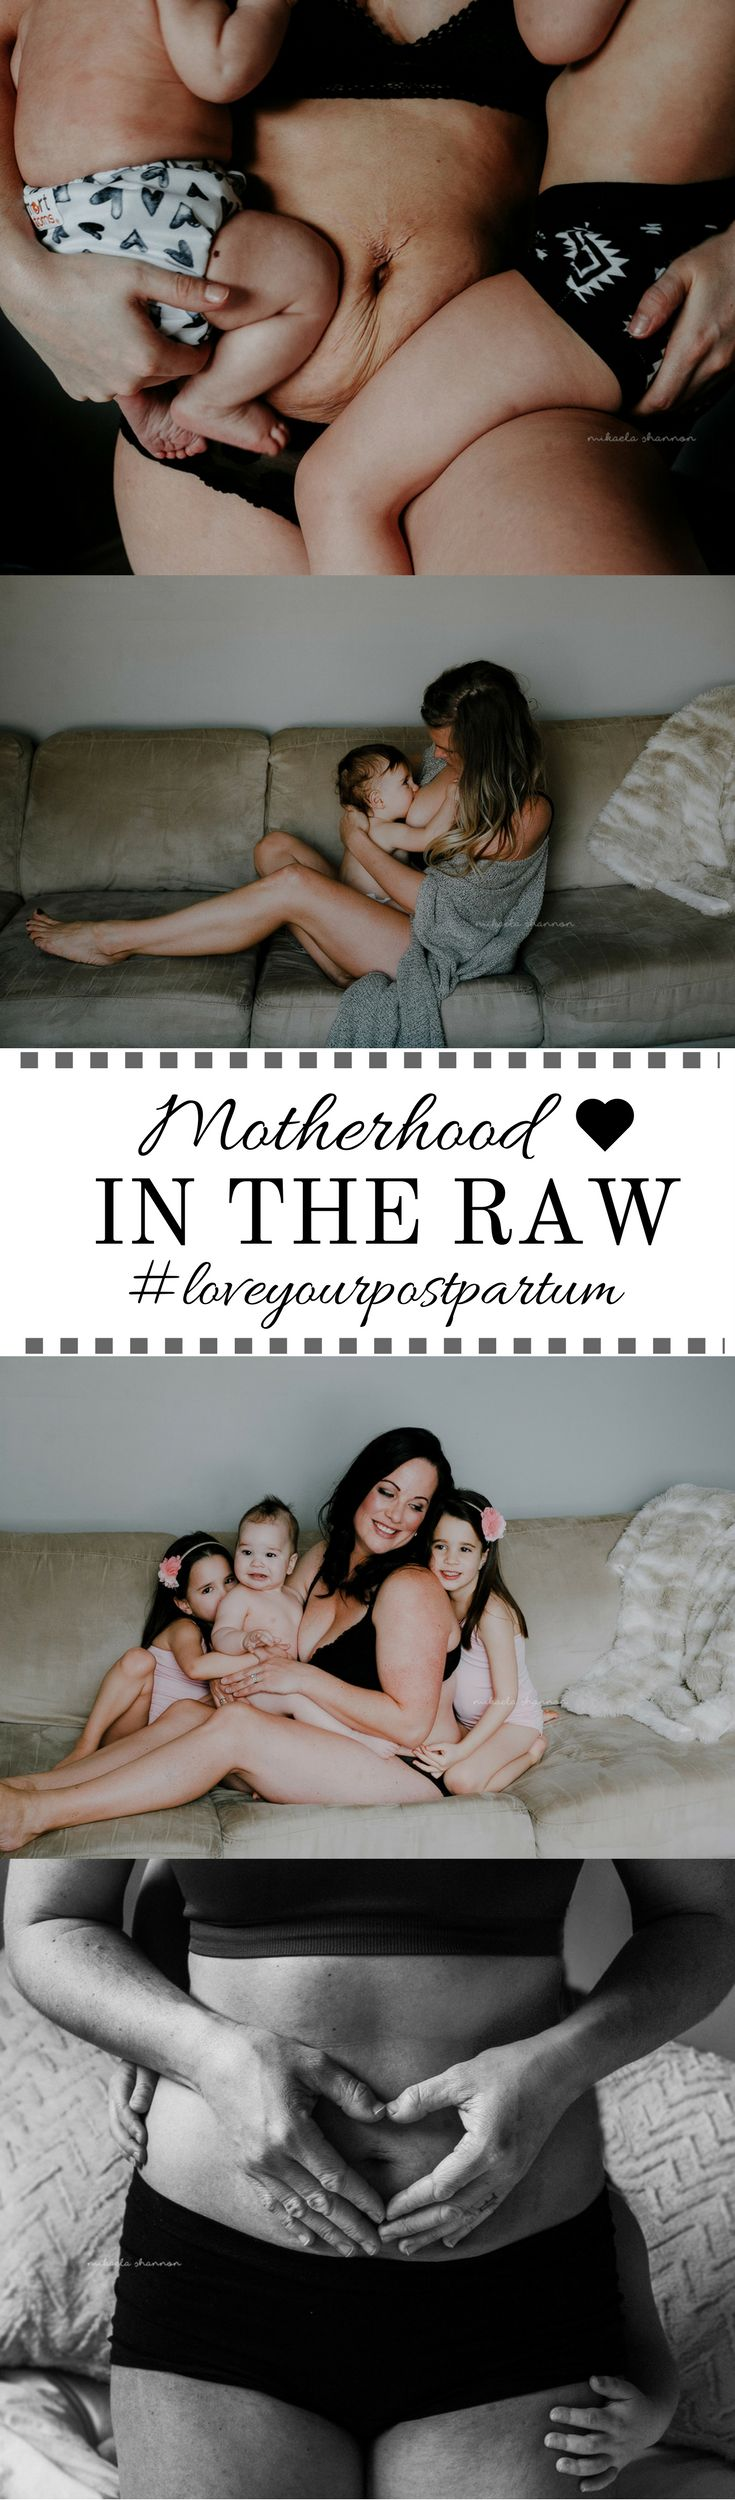 Love Your Postpartum | Motherhood | Raw Photos | Postpartum Photos | Mommy and baby | Mother and Kids photography | Photography Ideas | Photography Pose ideas | lifestyle session